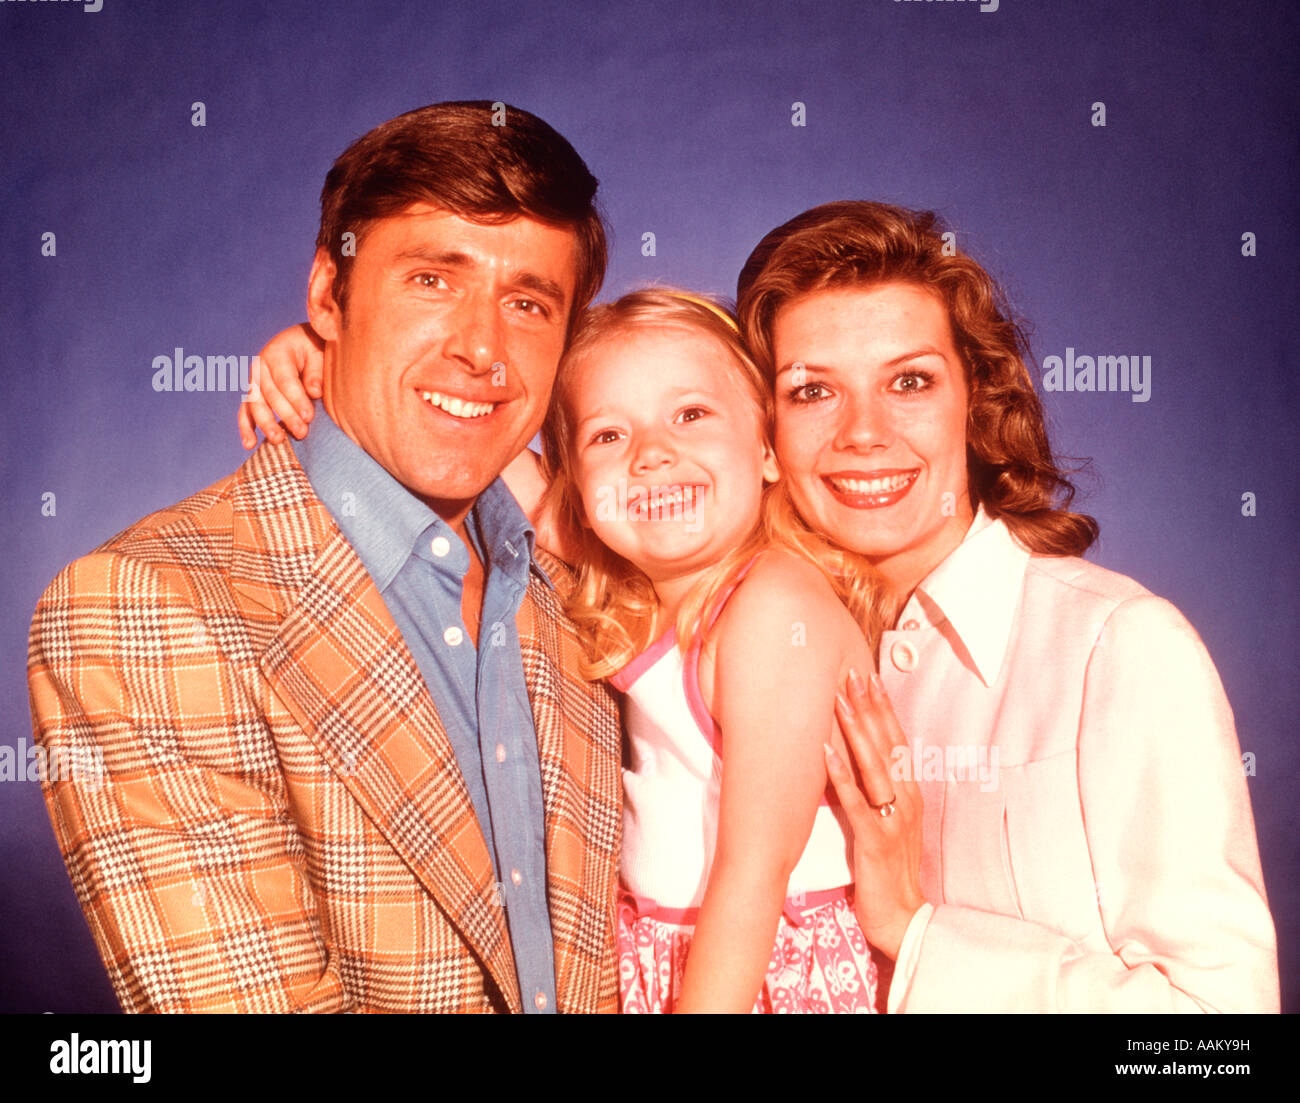 1970s HEAD SHOULDERS PORTRAIT SMILING FAMILY OF 3 - Stock Image